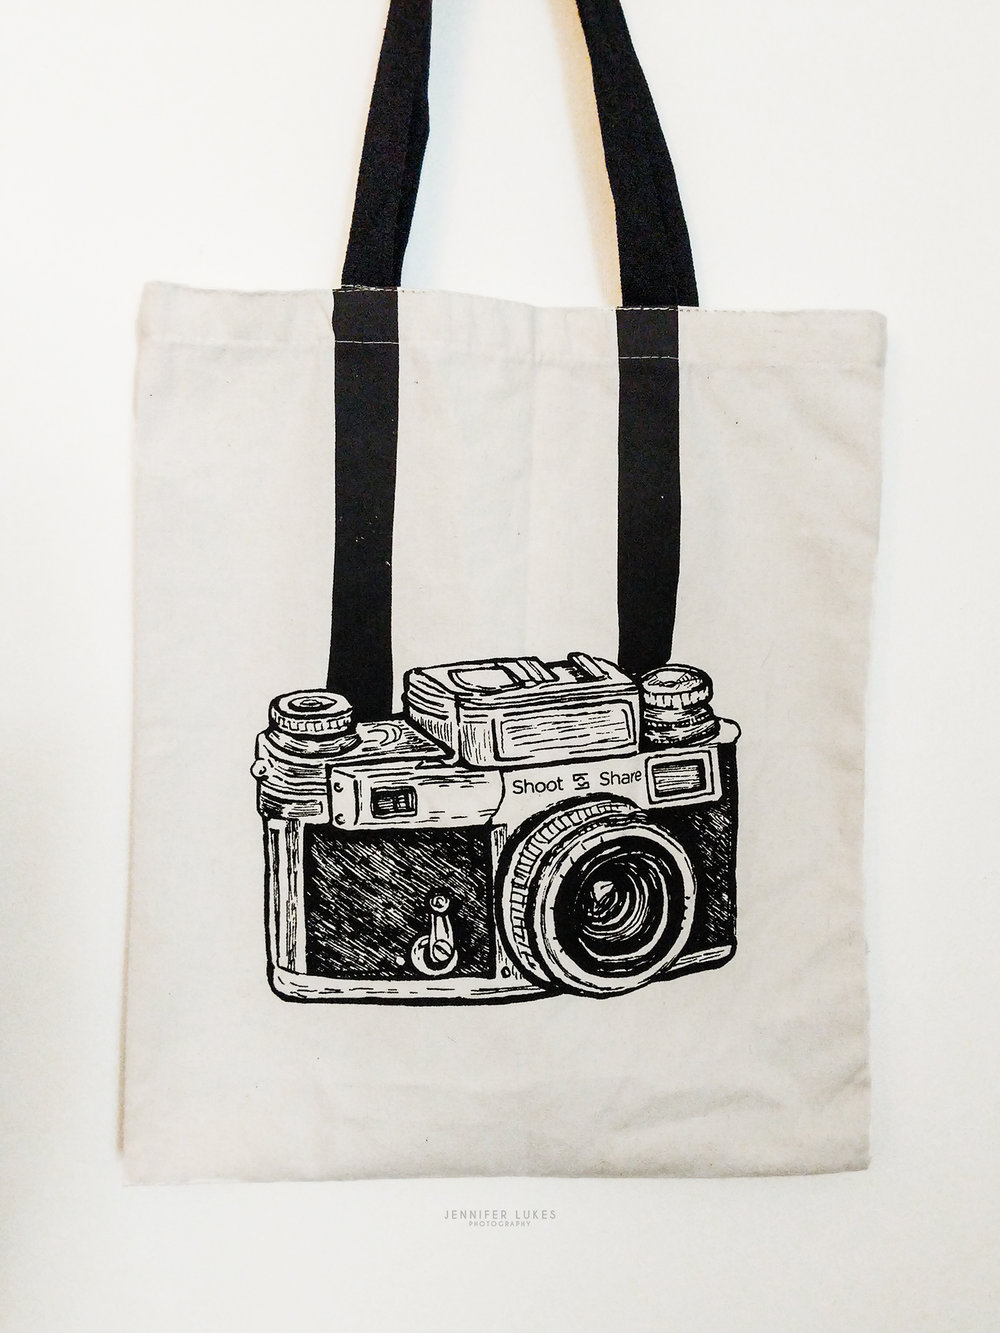 The 2018 shoot and share tote bag for going all in with 50 images.